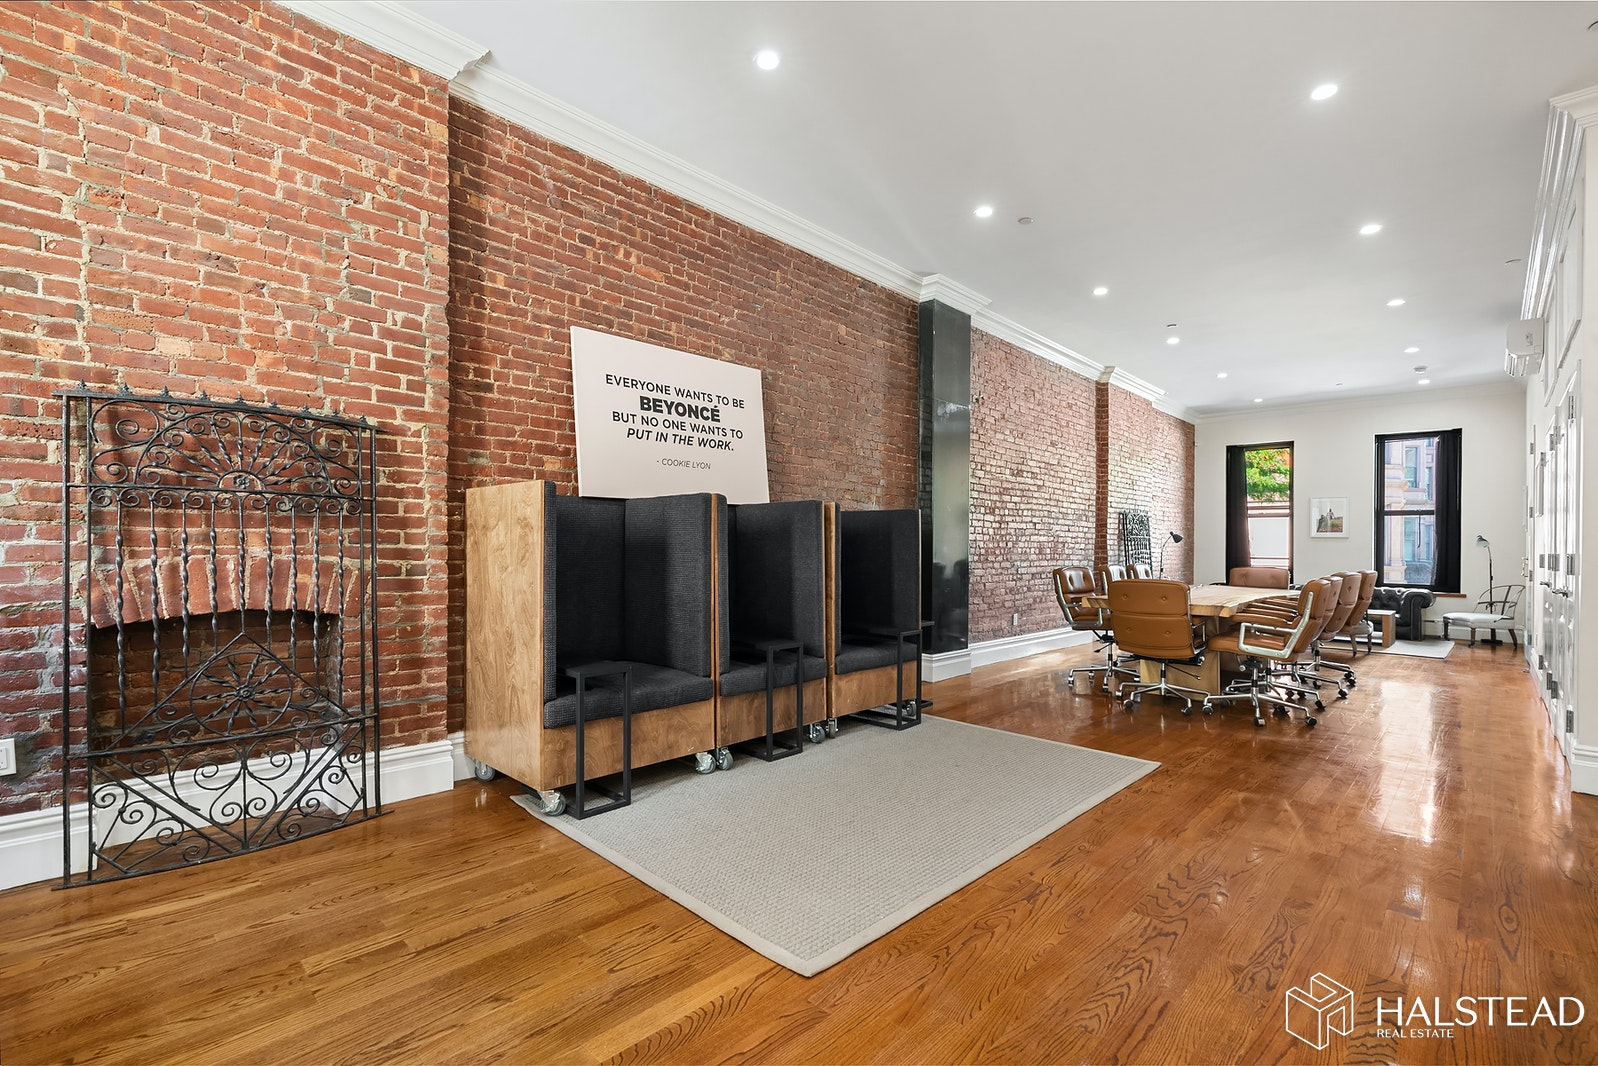 Located in charming and convenient Mount Morris Park, everything in this townhome has been renovated. This duplex unit is ideal for someone who wants space for everyone in the home all day long. The expansive 52 x 18 living space is unlike anything you've seen! North-facing bay windows with seating will have you gazing all day over the row of brownstones on 5th Avenue as well as the lush greenery from the park.The modern and wide galley kitchen features tall, soft-close cabinets, stainless steel appliances and a juliet balcony which overlooks the terrace below. All three bedrooms have en suite baths, can accommodate a queen-sized bed plus furniture and has numerous closets. NOTE: Renting the complete house is an option. Please view our 3D Walkthrough.